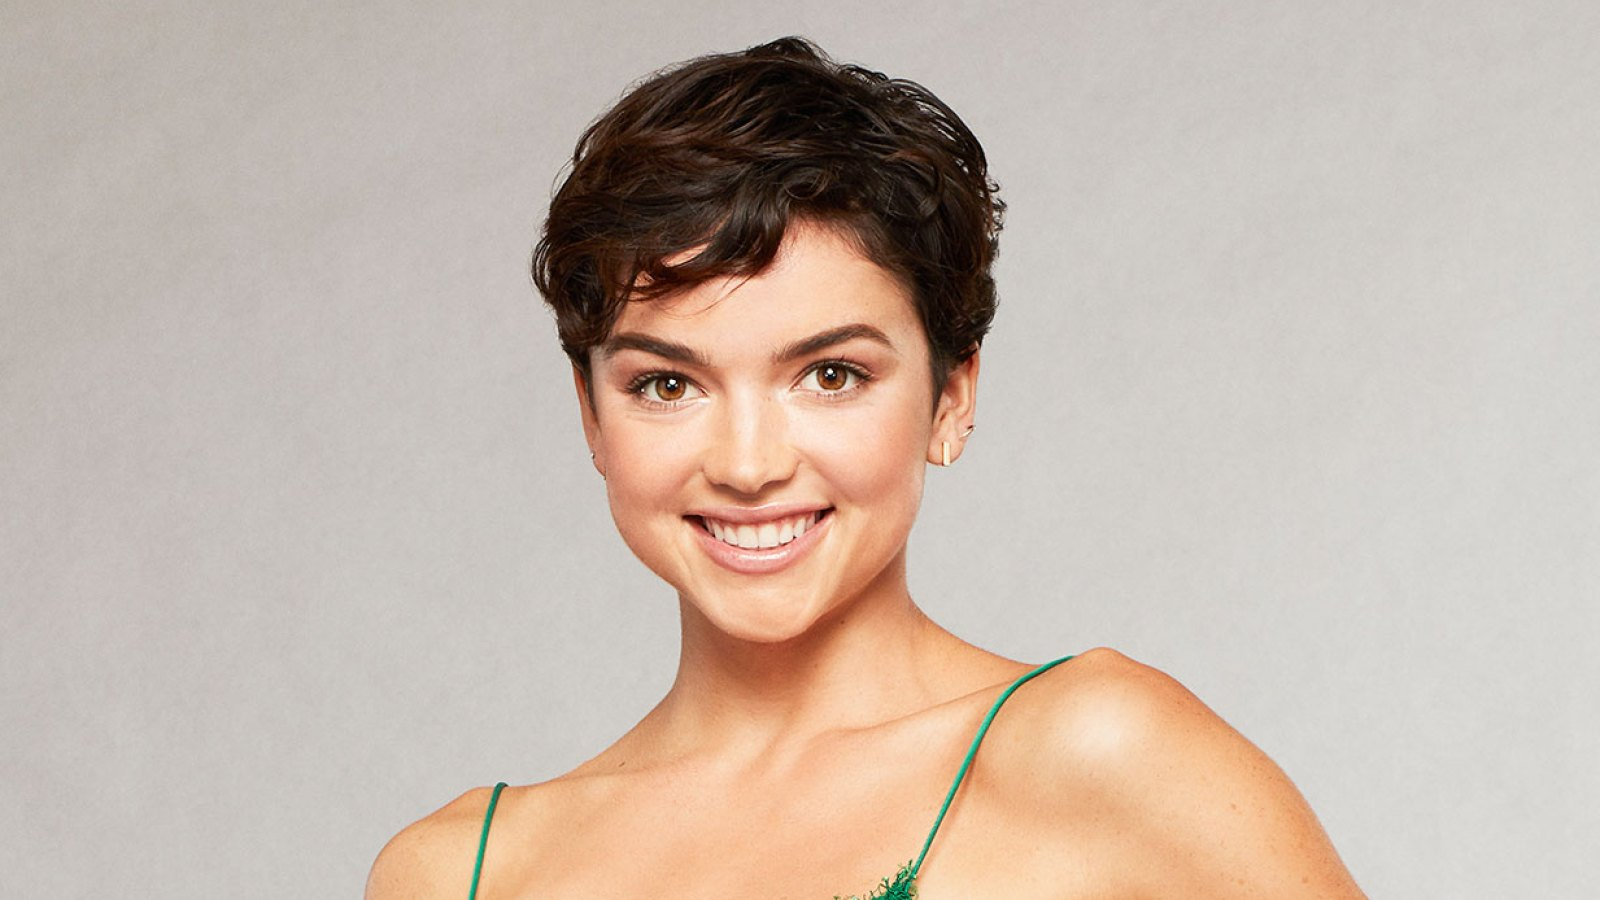 Bachelor's Bekah Martinez Shows Off Hairy Armpits 1 Month After Daughter's  Birth: 'Every Mom Bod Is Different'